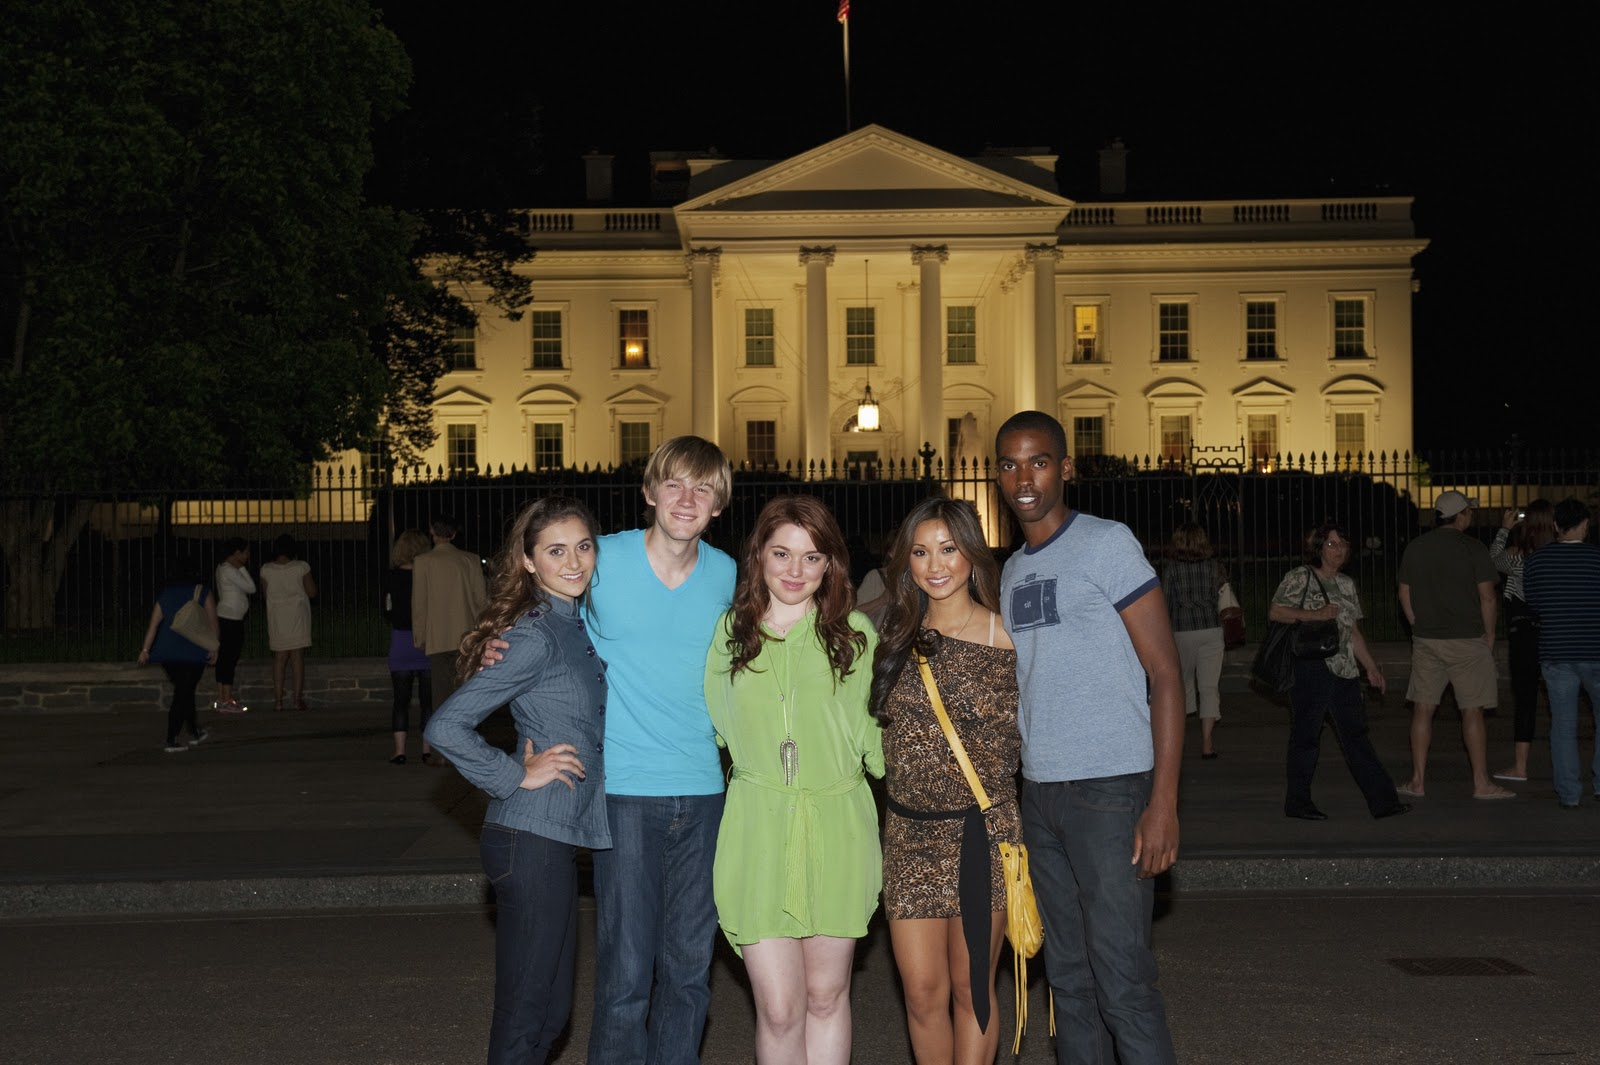 Brenda( Second right) was in a relationship with Jjavascript:void(0)ason Dolley(second left) in 2008